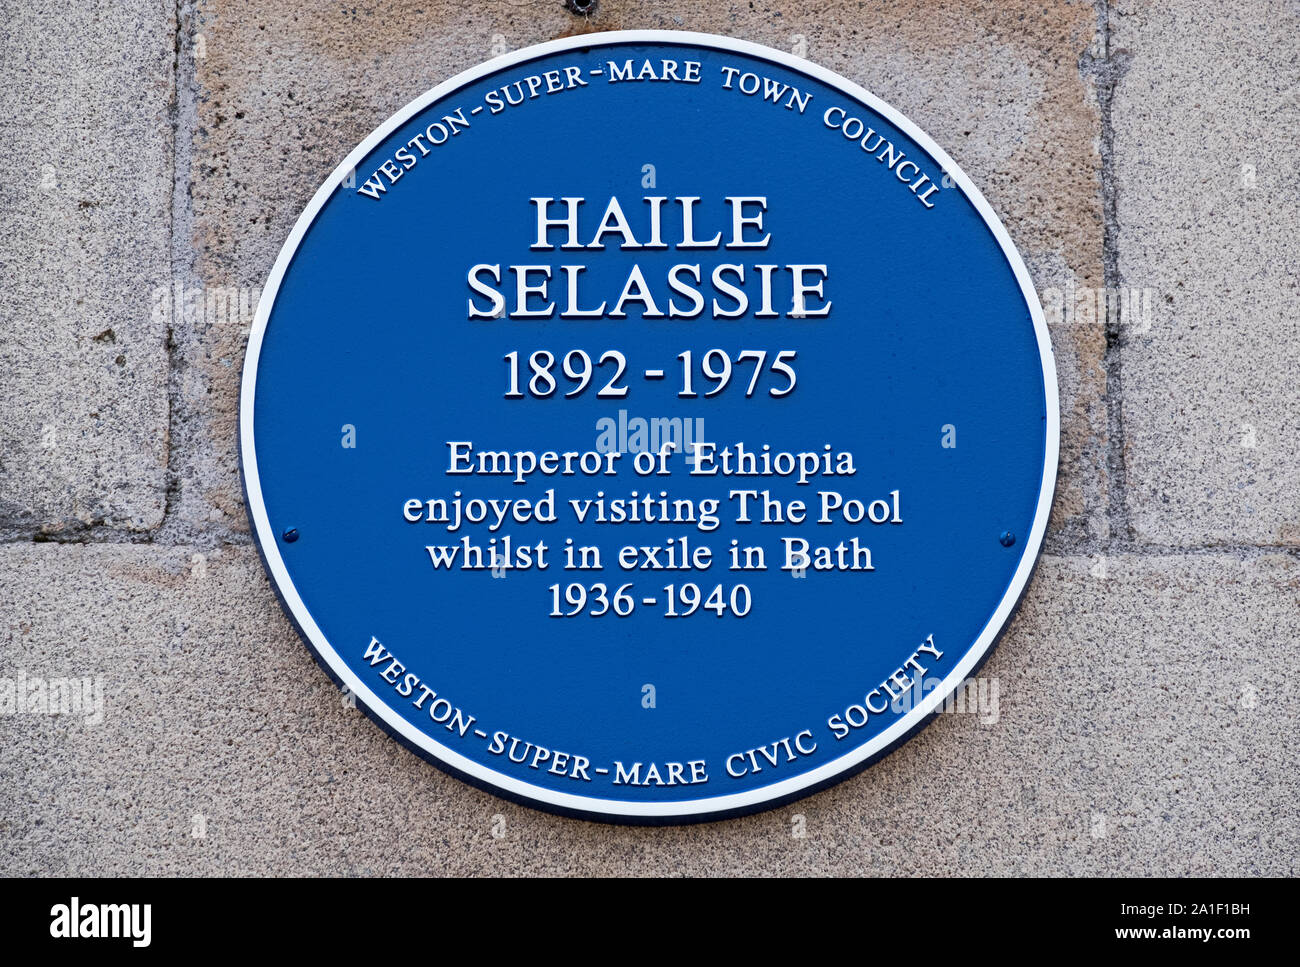 A blue plaque commemorating the Ethiopian emperor Haile Selassie's visits to the former lido in Weston-super-Mare, UK. Stock Photo